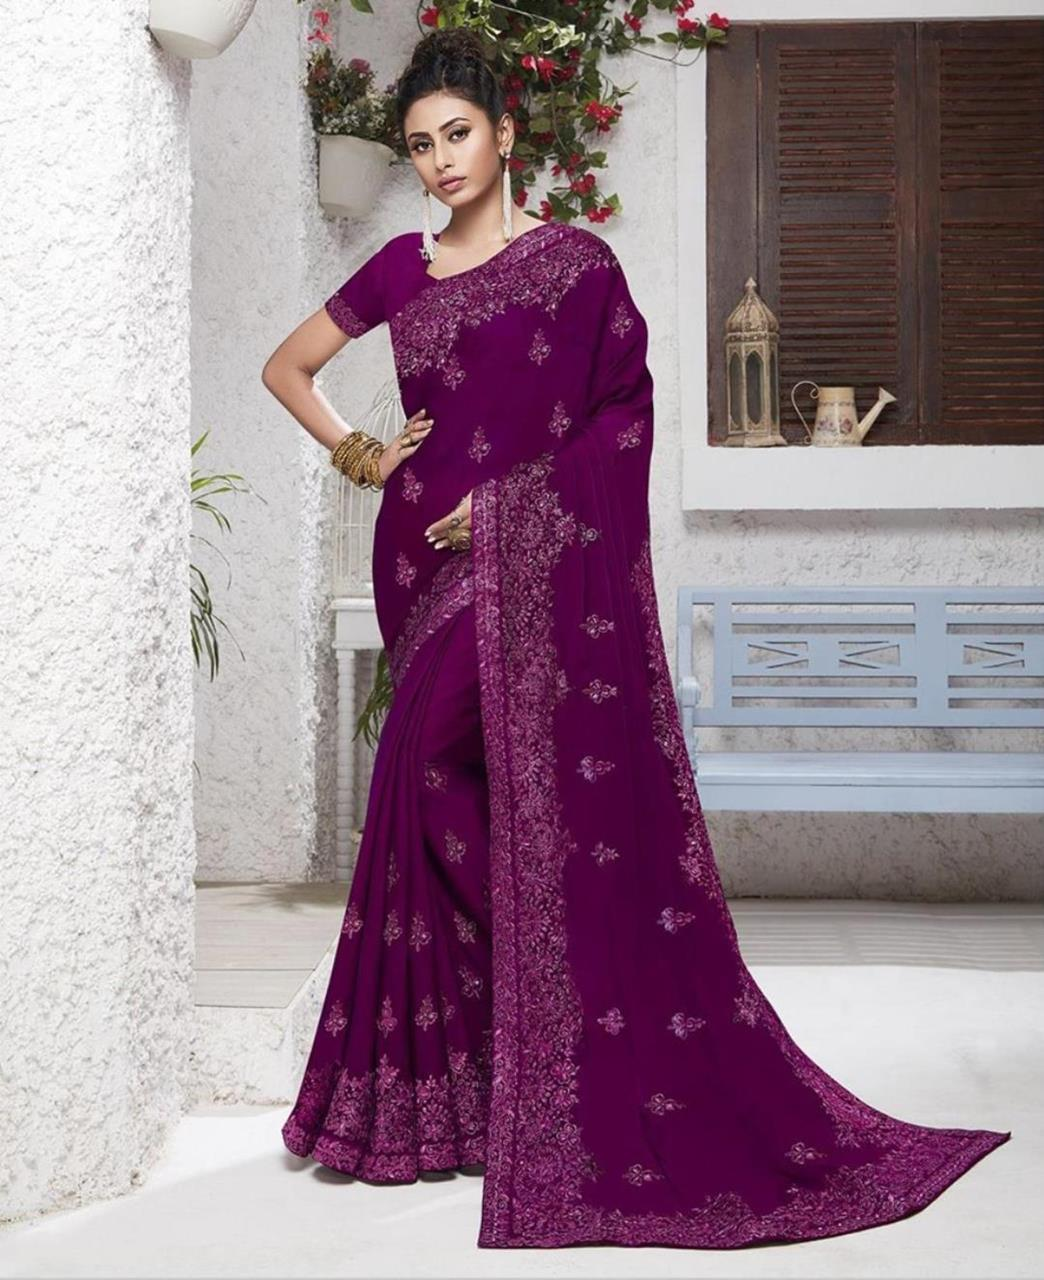 Resham Chiffon Saree in Purple